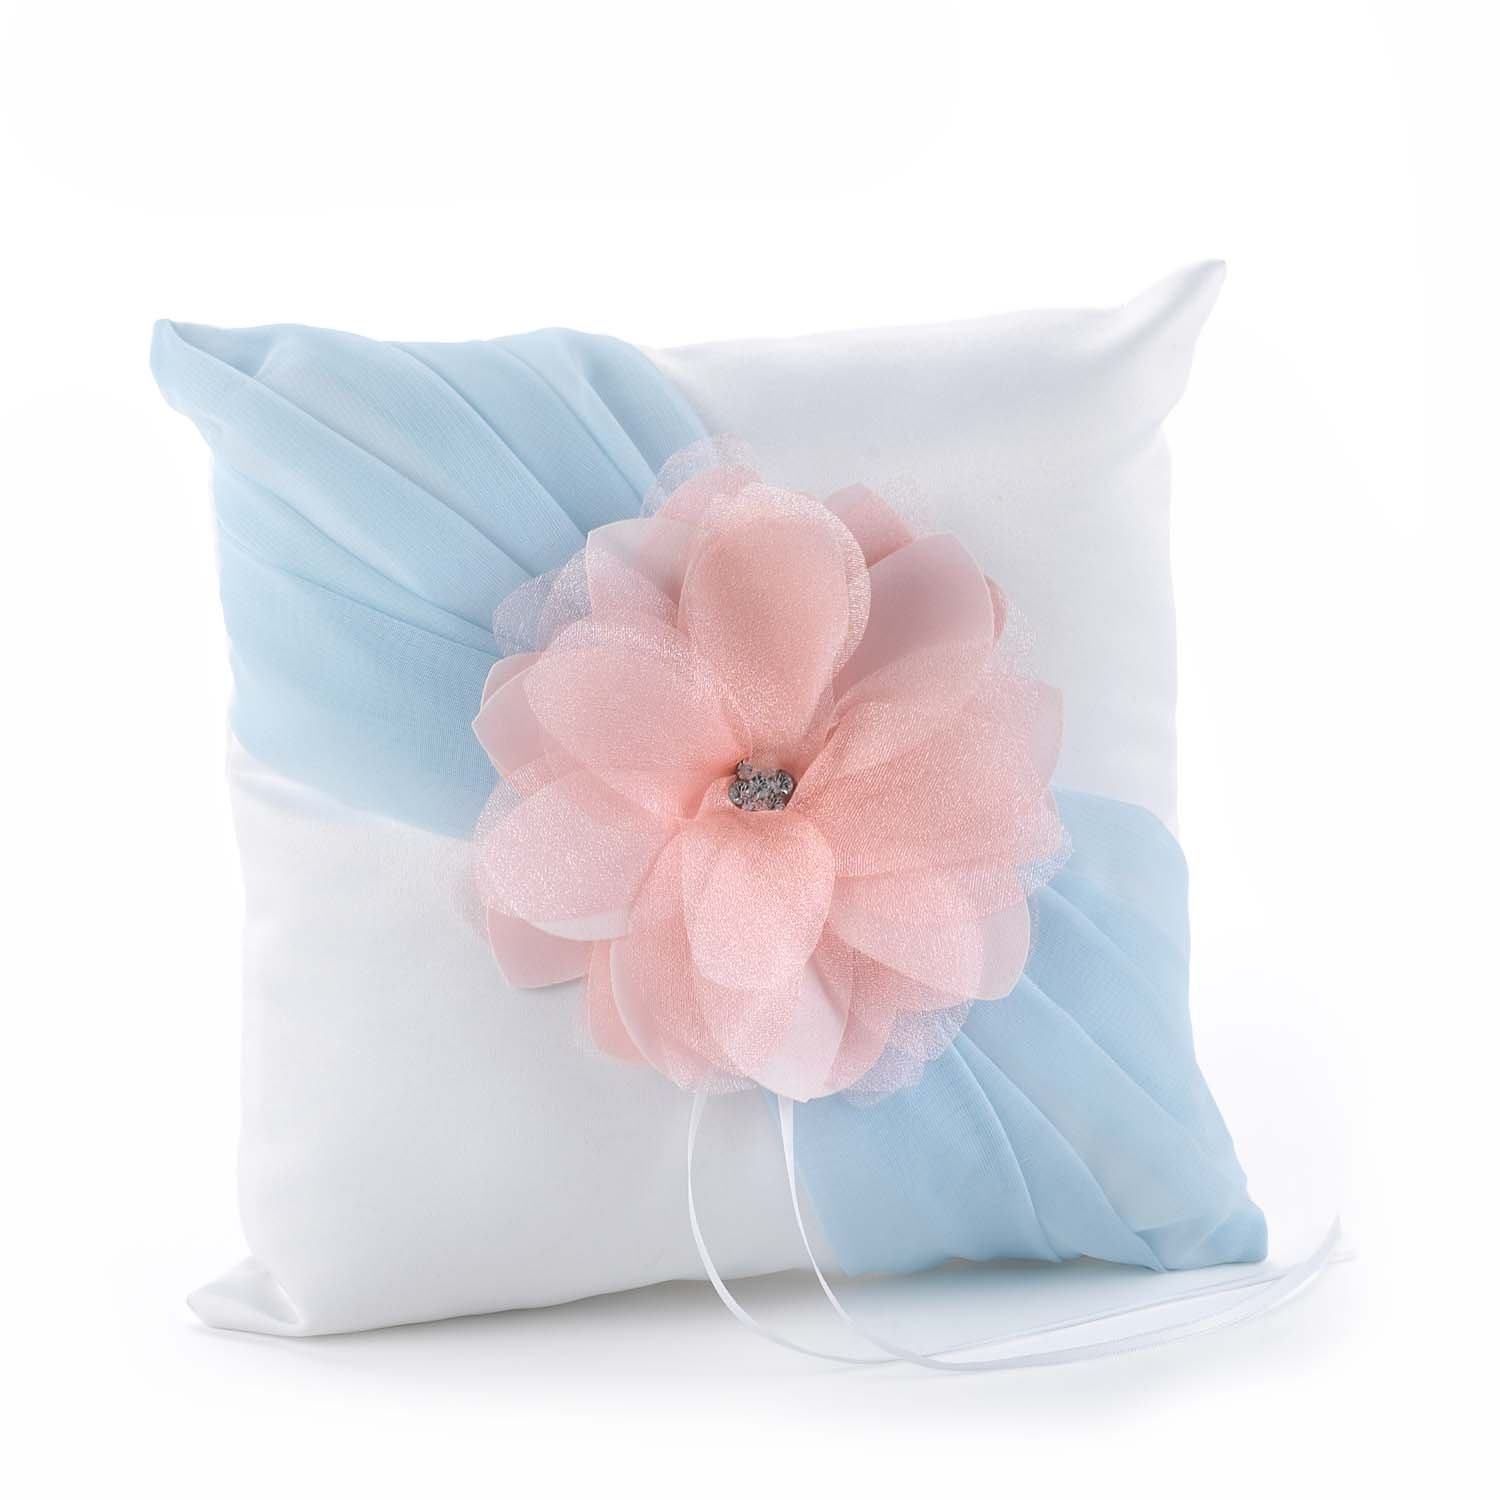 Hortense B. Hewitt Wedding Accessories Pretty Pastels Ring Pillow